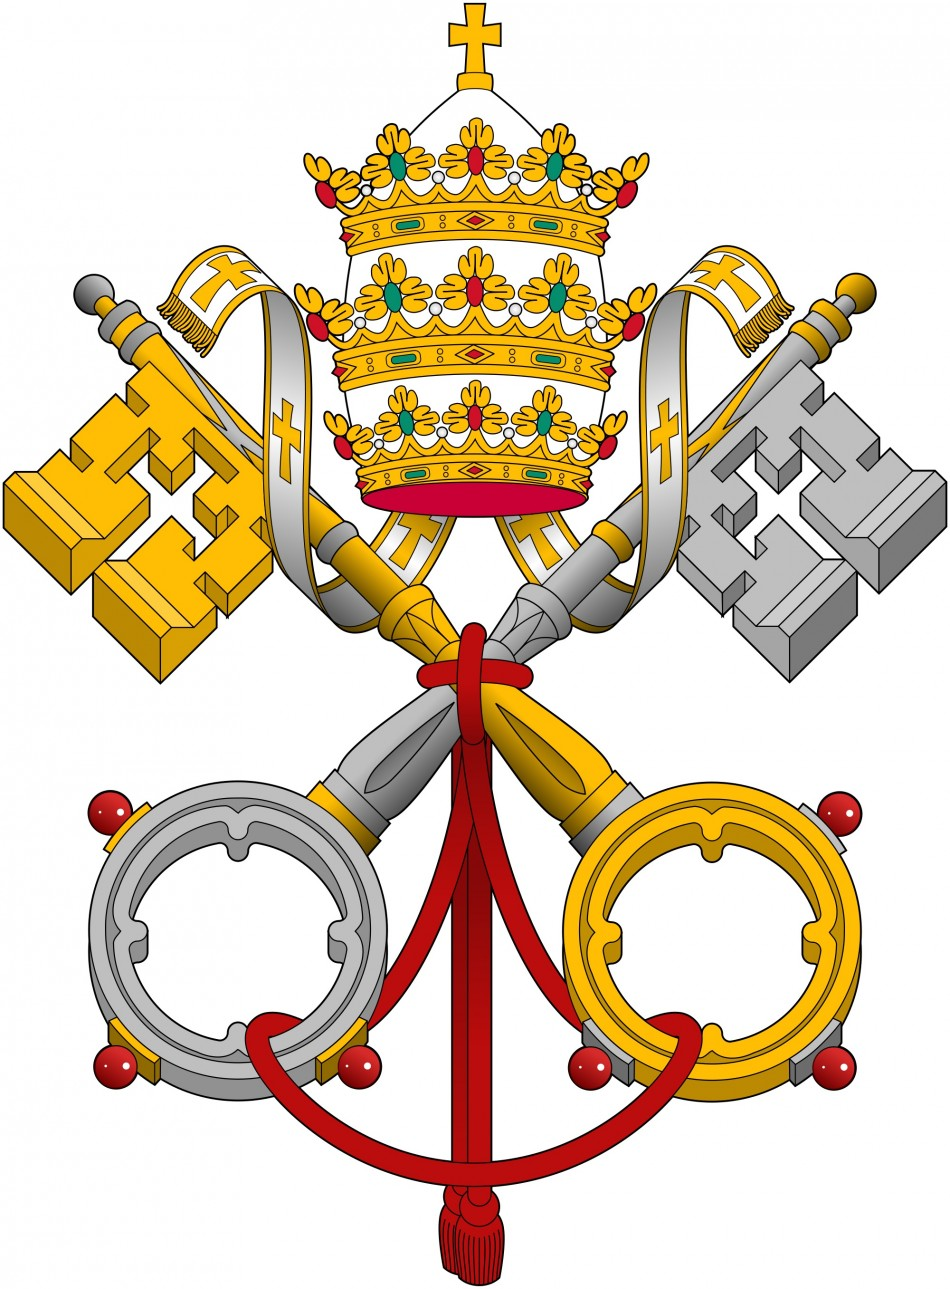 Emblem of APSA, or Institute for the Works of Religion, otherwise known as the Vatican Bank,